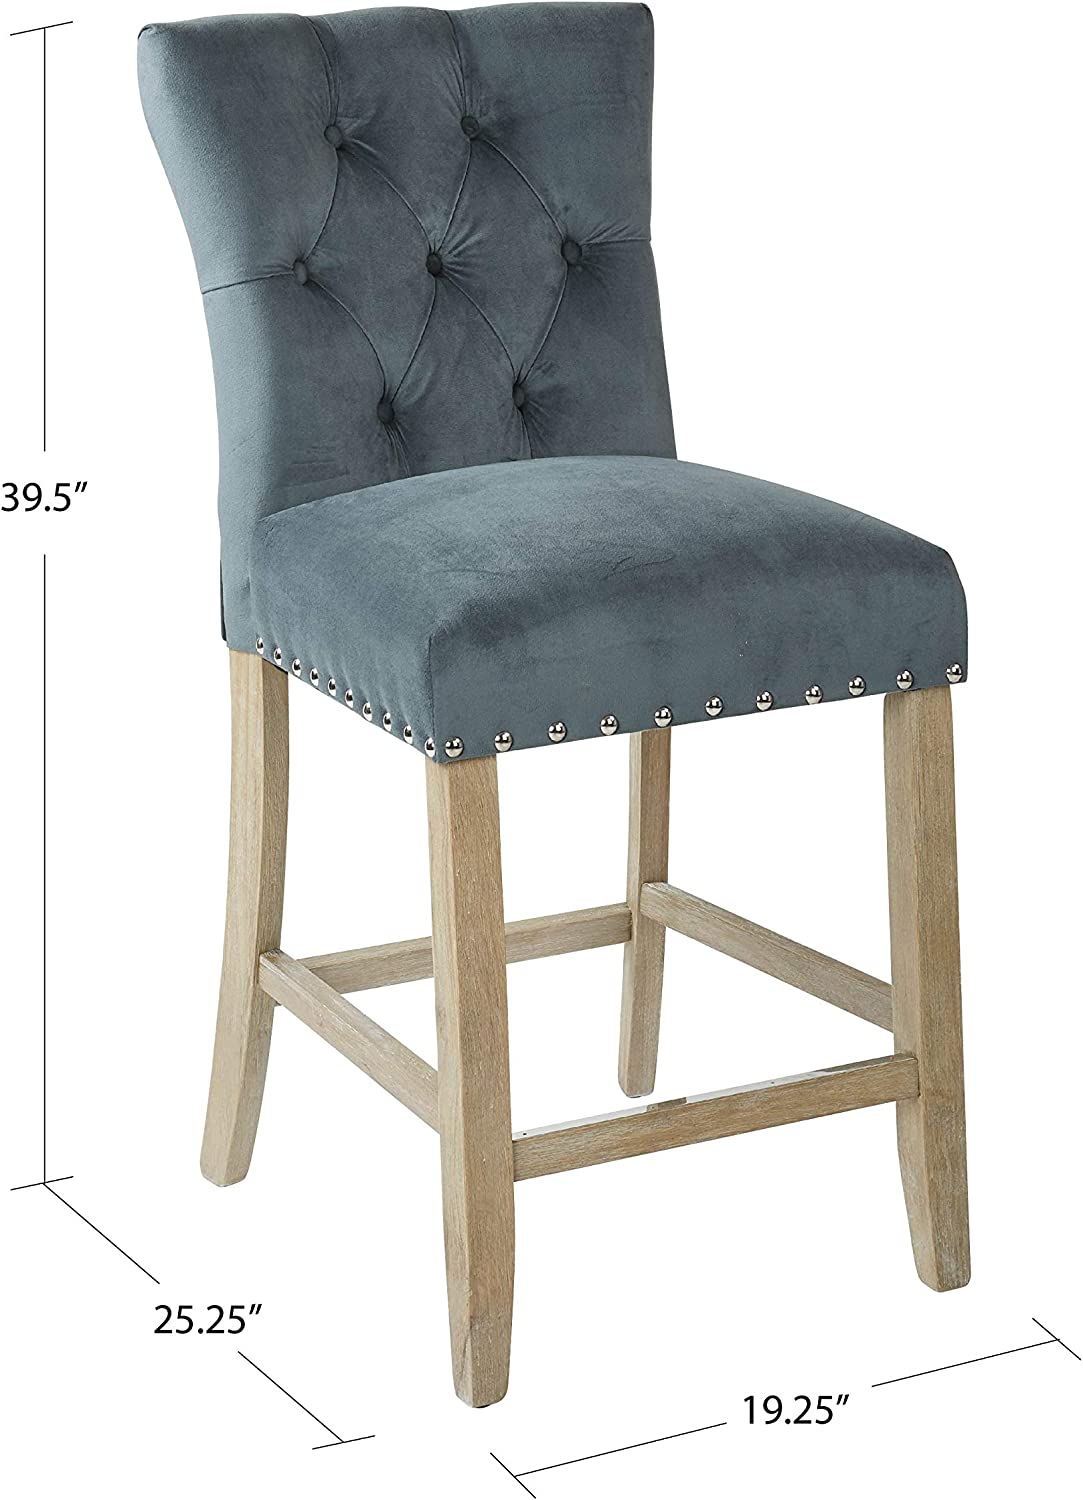 2-Pack Bassett Preston Fabric Seat and Tufted Back 24 Counter Stool with Brushed Rustic Wood Legs and Nailhead Accents Marlow Charcoal